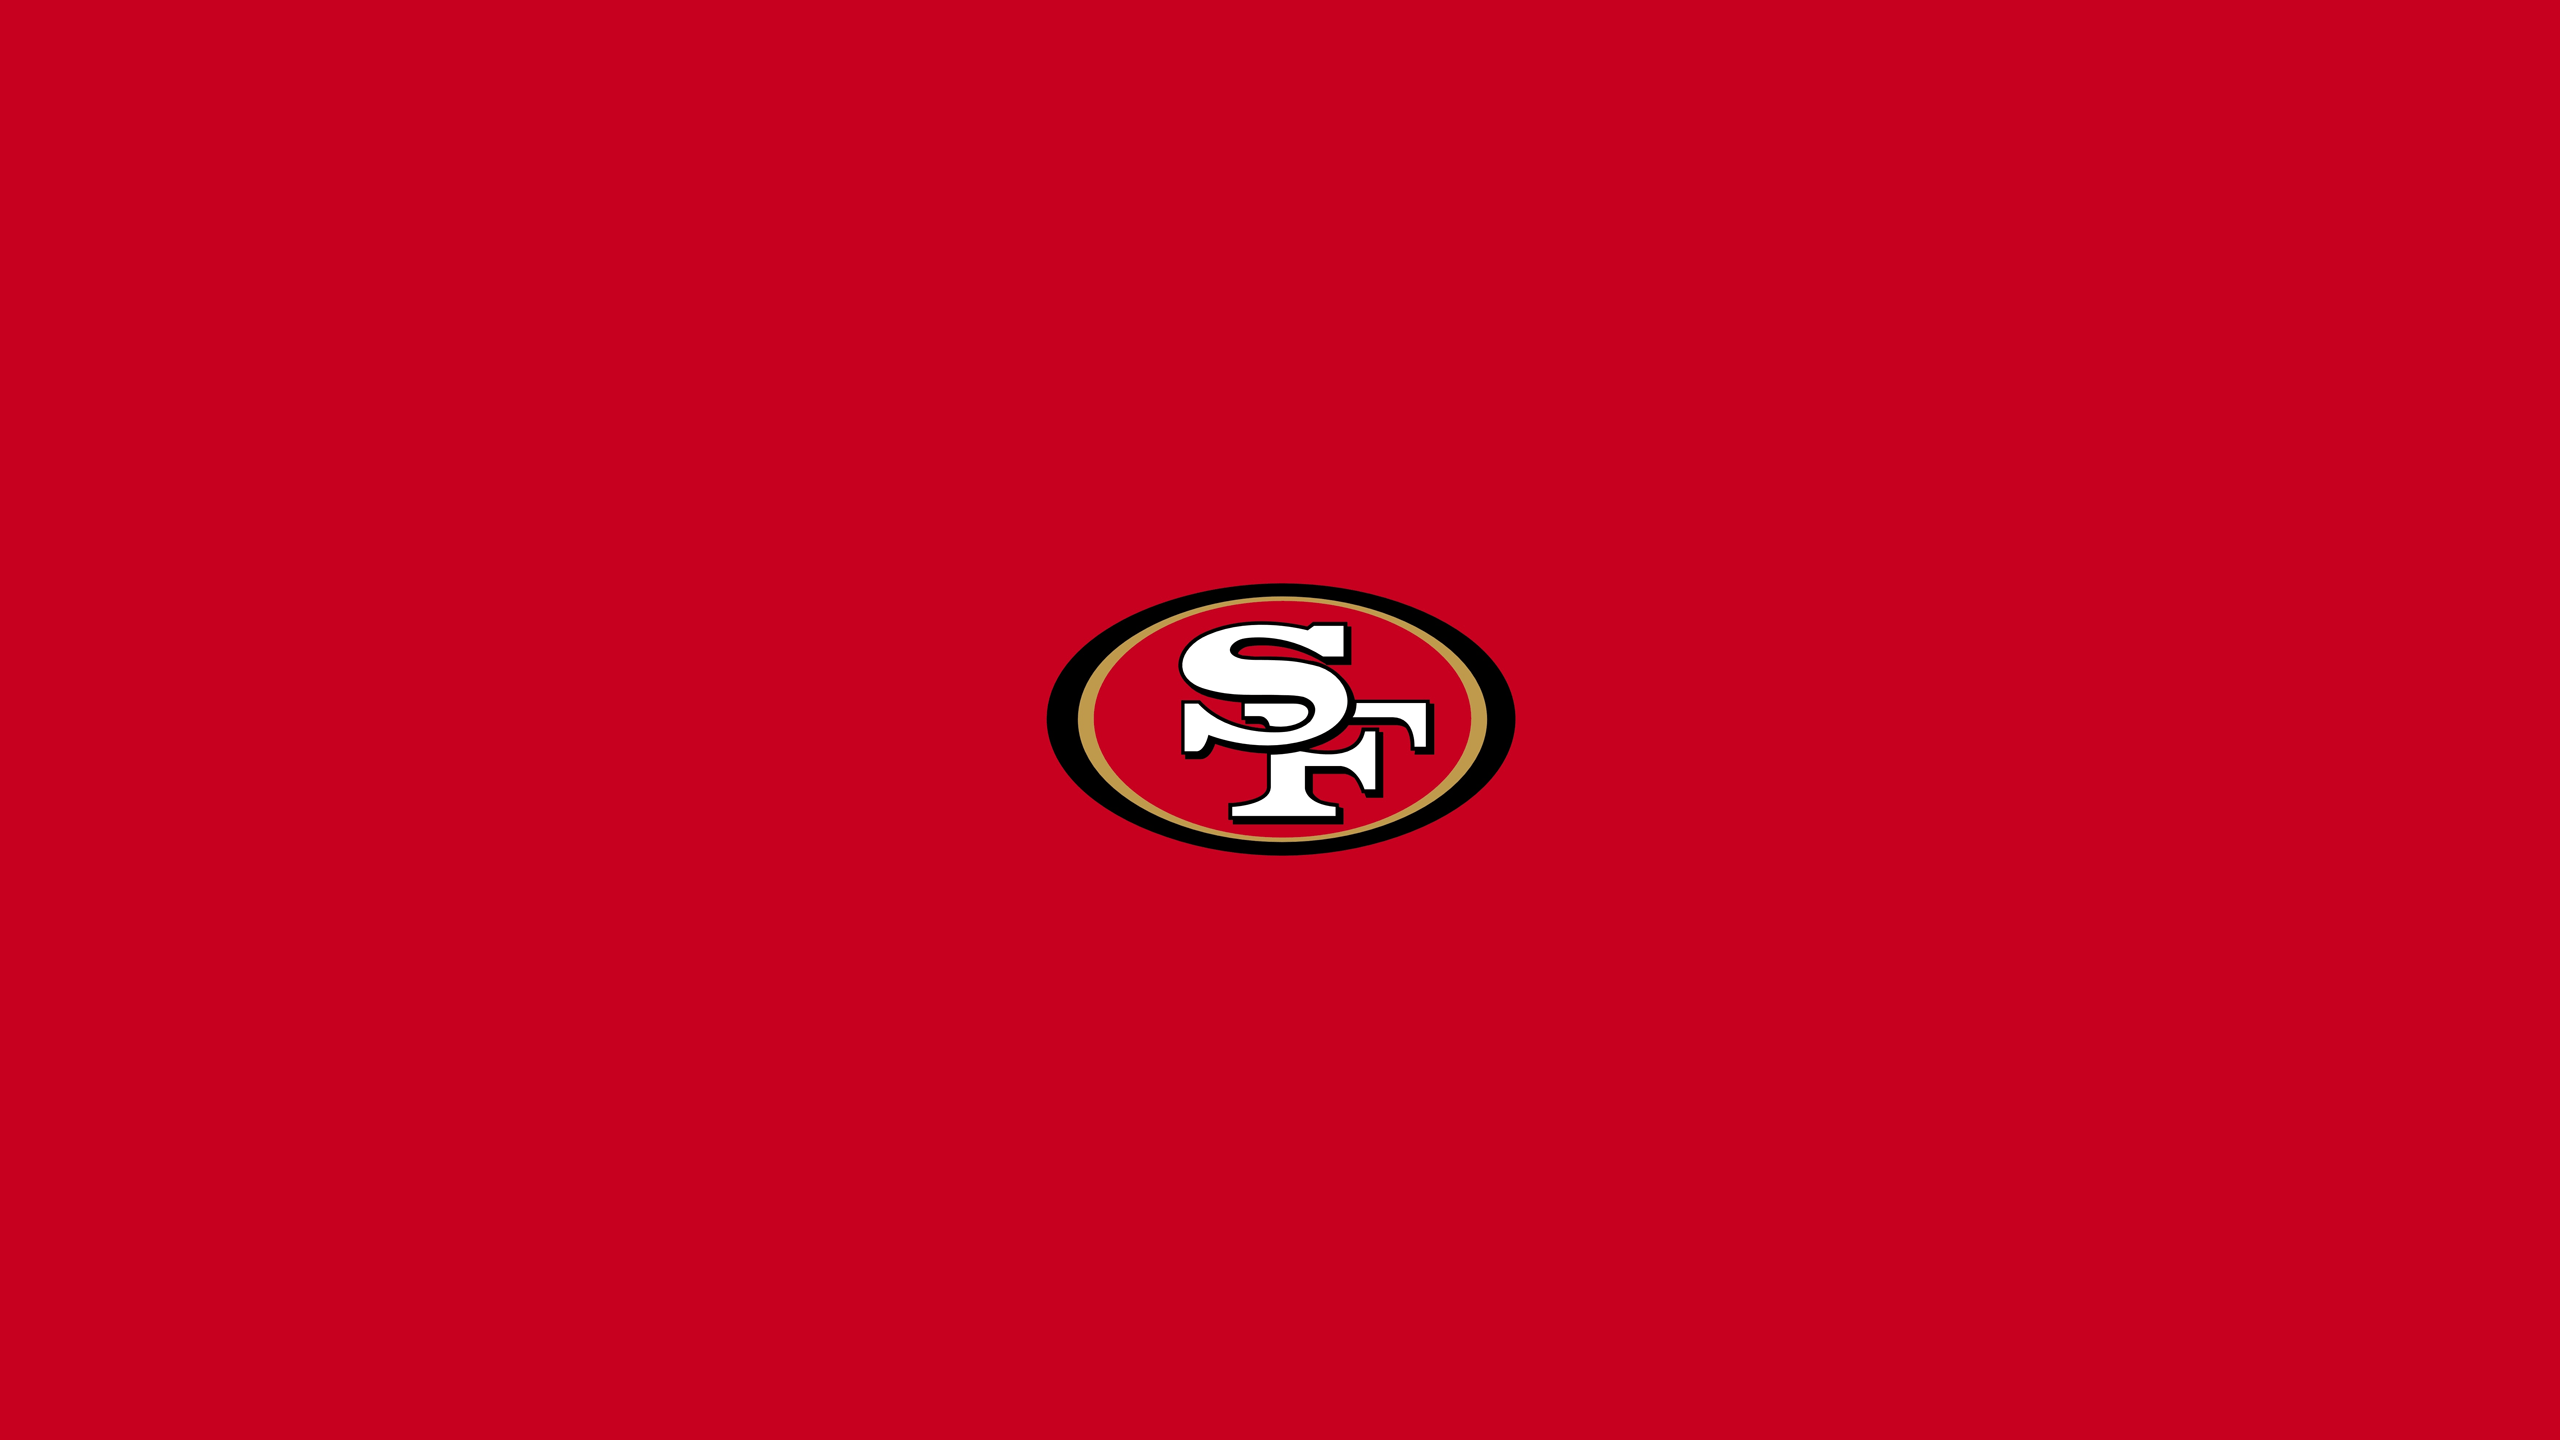 49ers logo wallpapers wallpaper cave logo 49ers wallpaper 5245 1440x2560px 49ers wallpaper 49ers voltagebd Choice Image